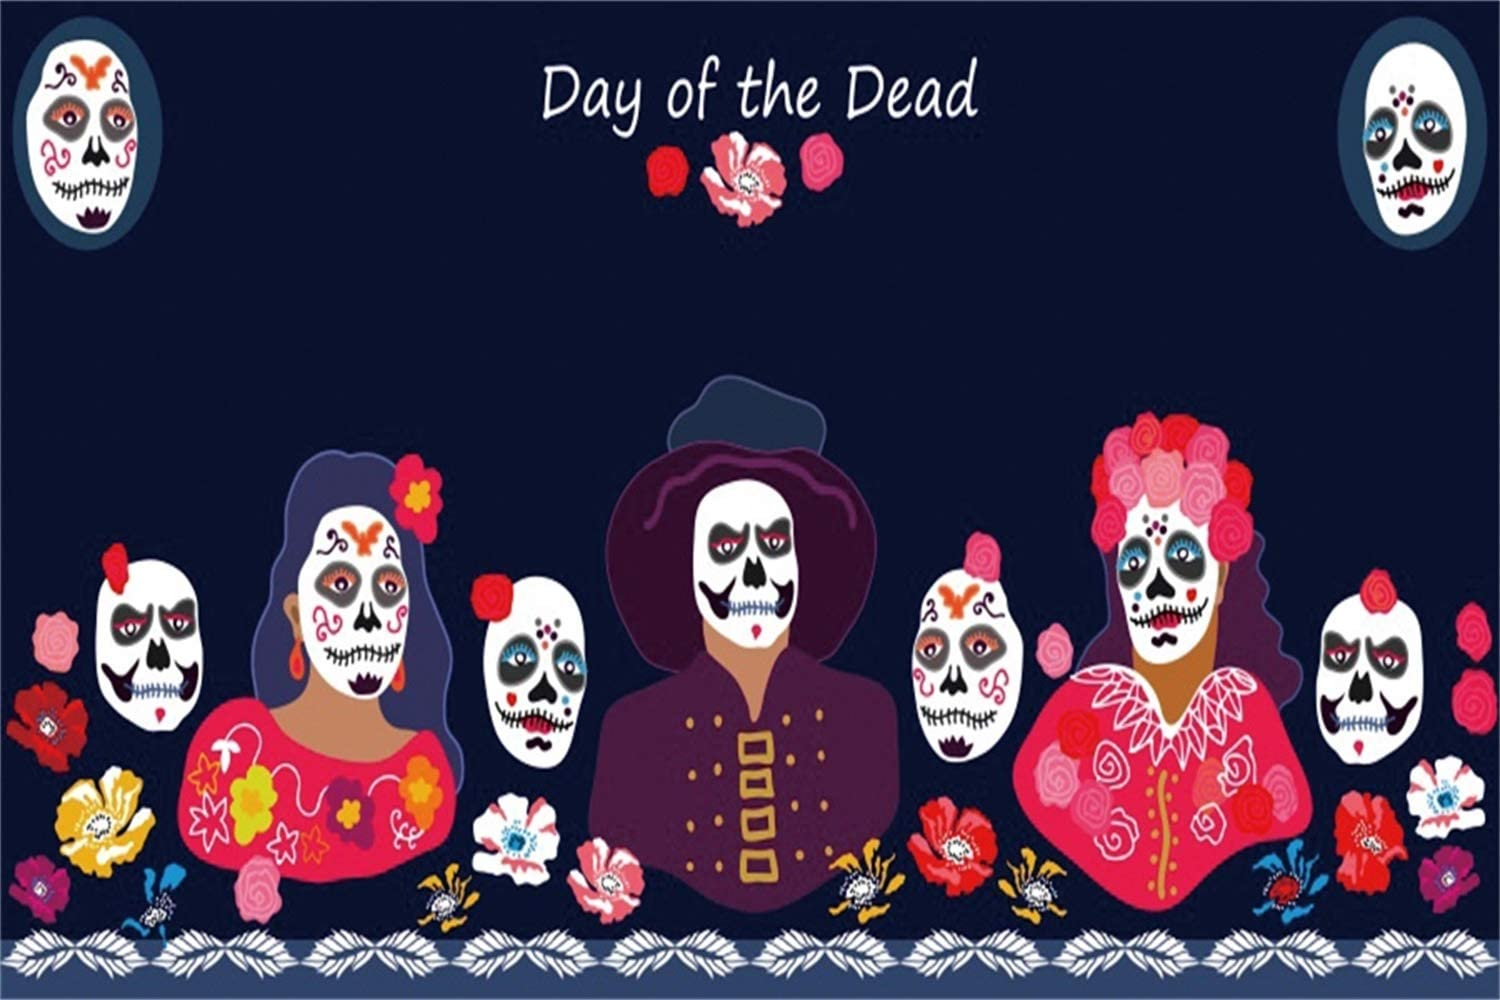 Amazon Com Leowefowa 10x6 5ft Day Of The Dead Backdrop Dia De